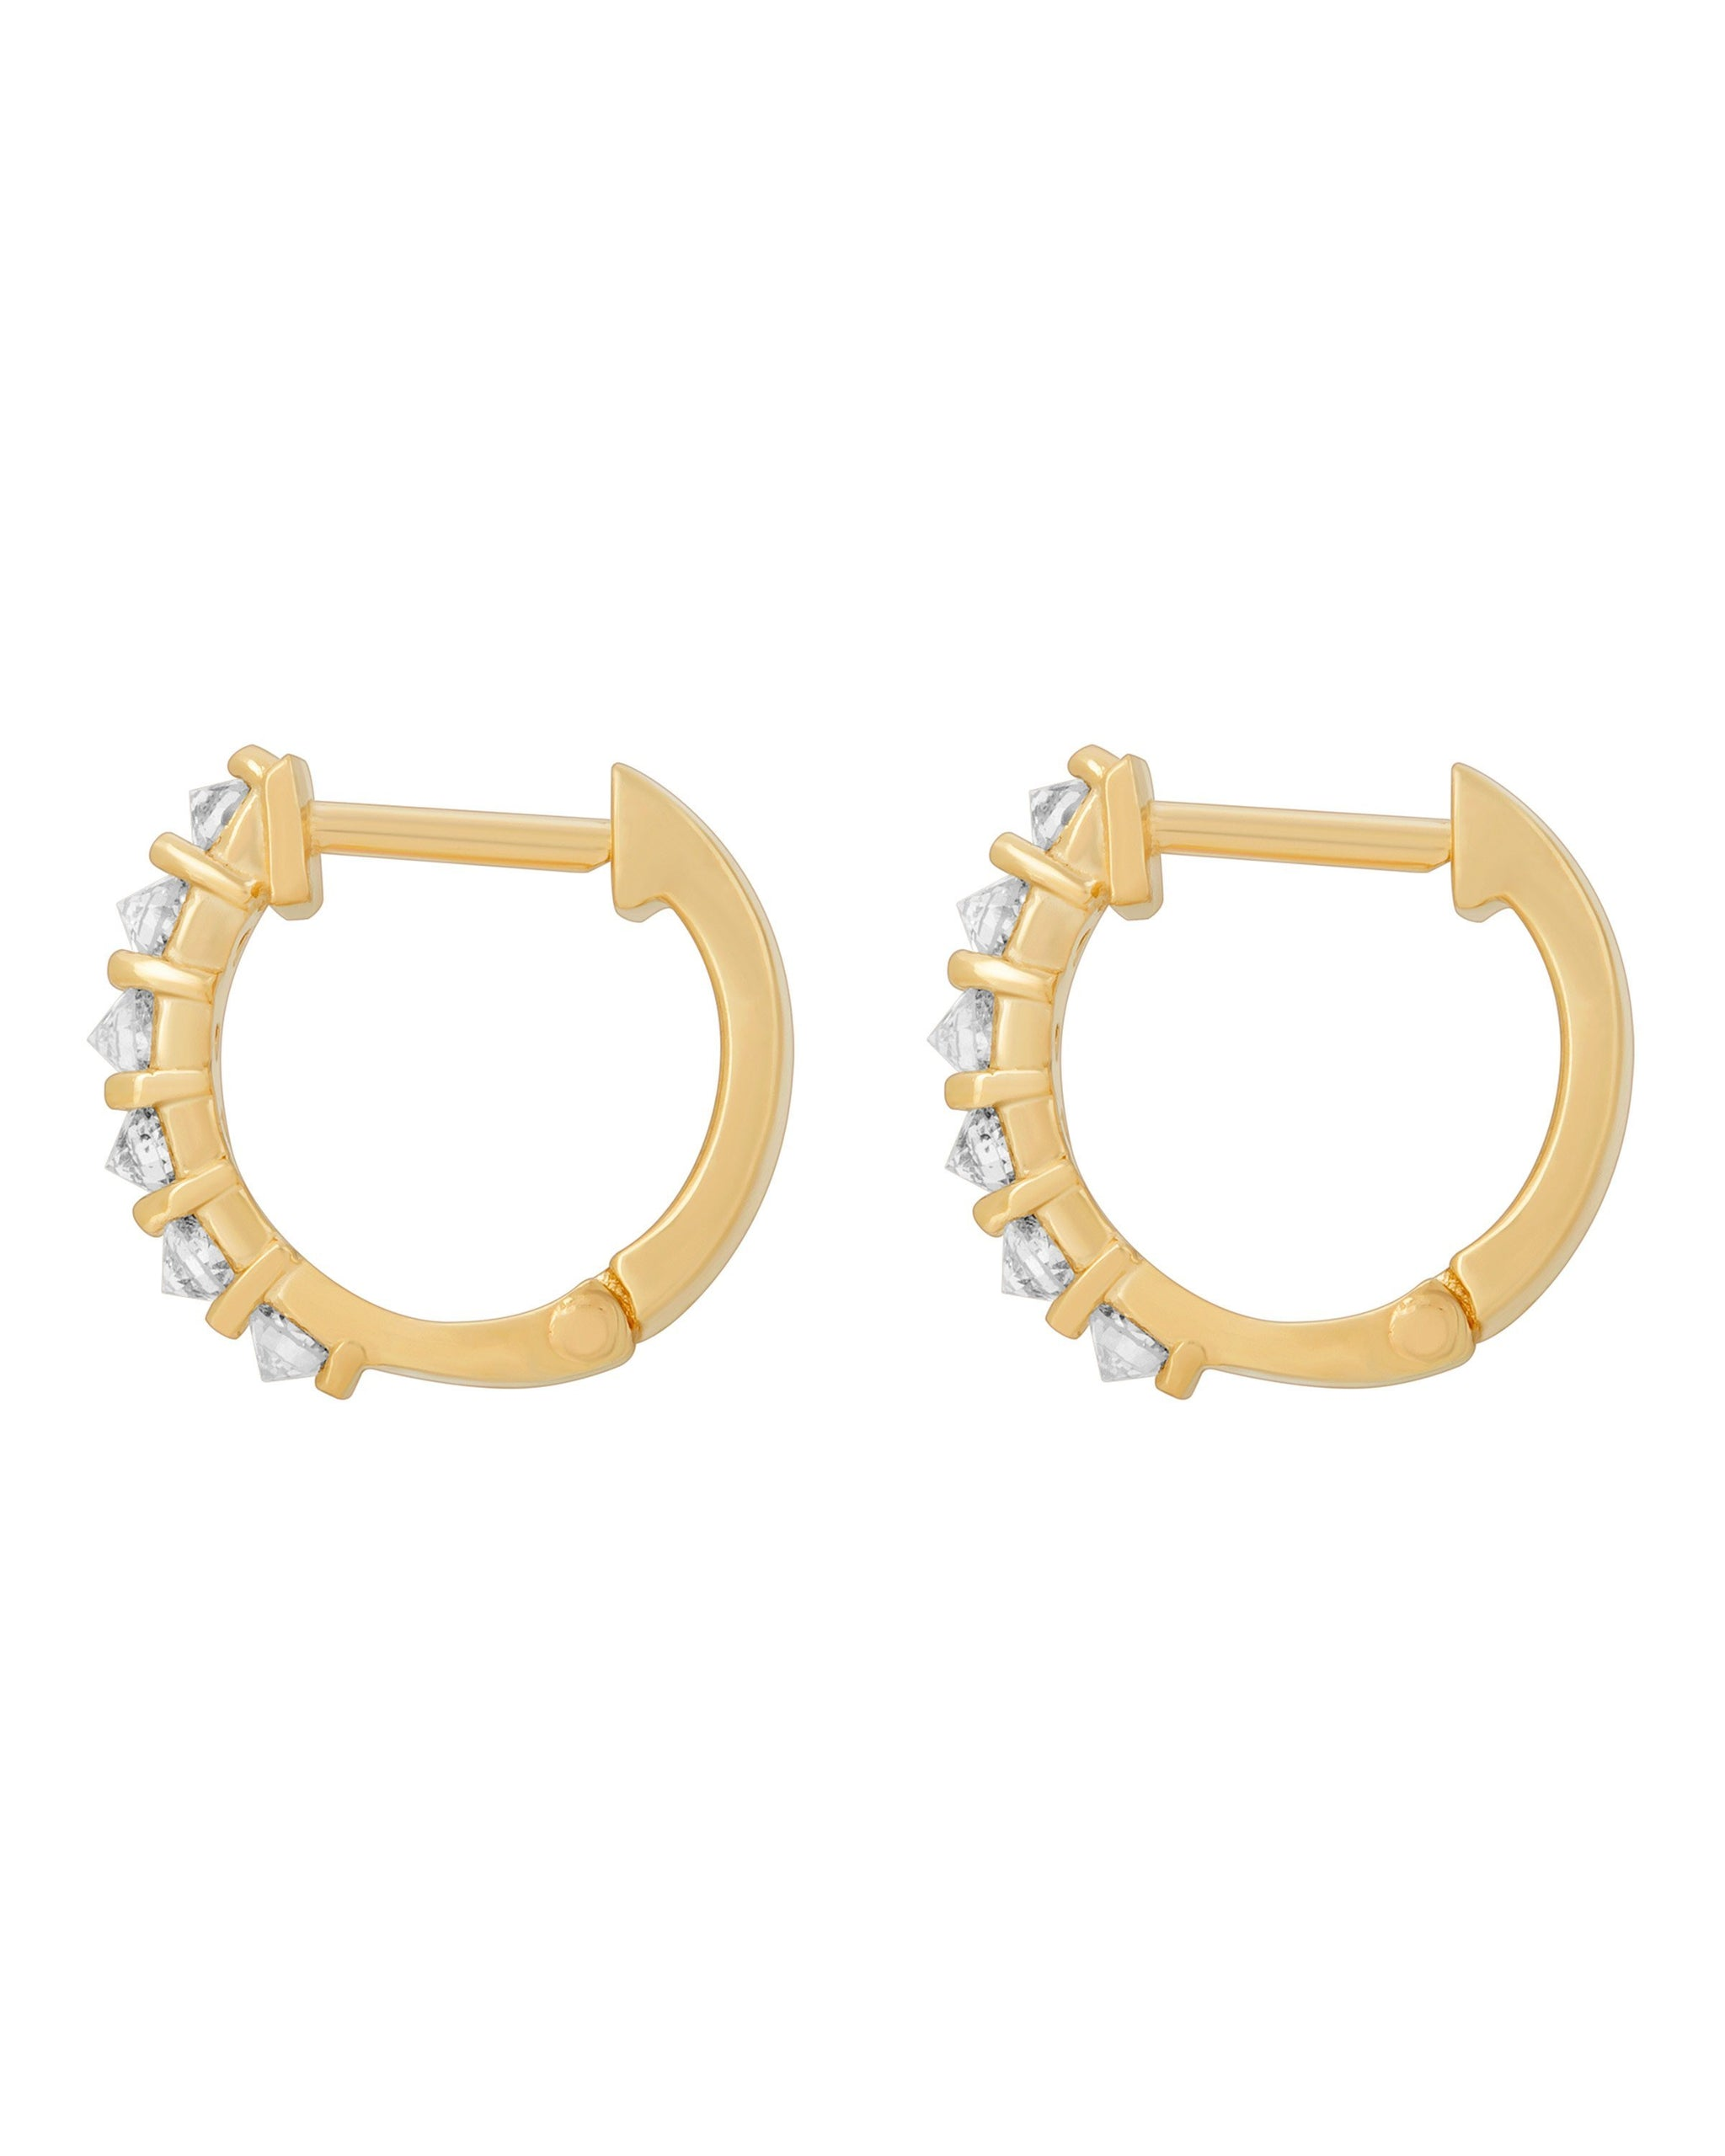 Eclipse Huggies, 14k Yellow Gold 11mm Huggie Hoops with Six White Diamonds per earring, Handmade by Turquoise + Tobacco